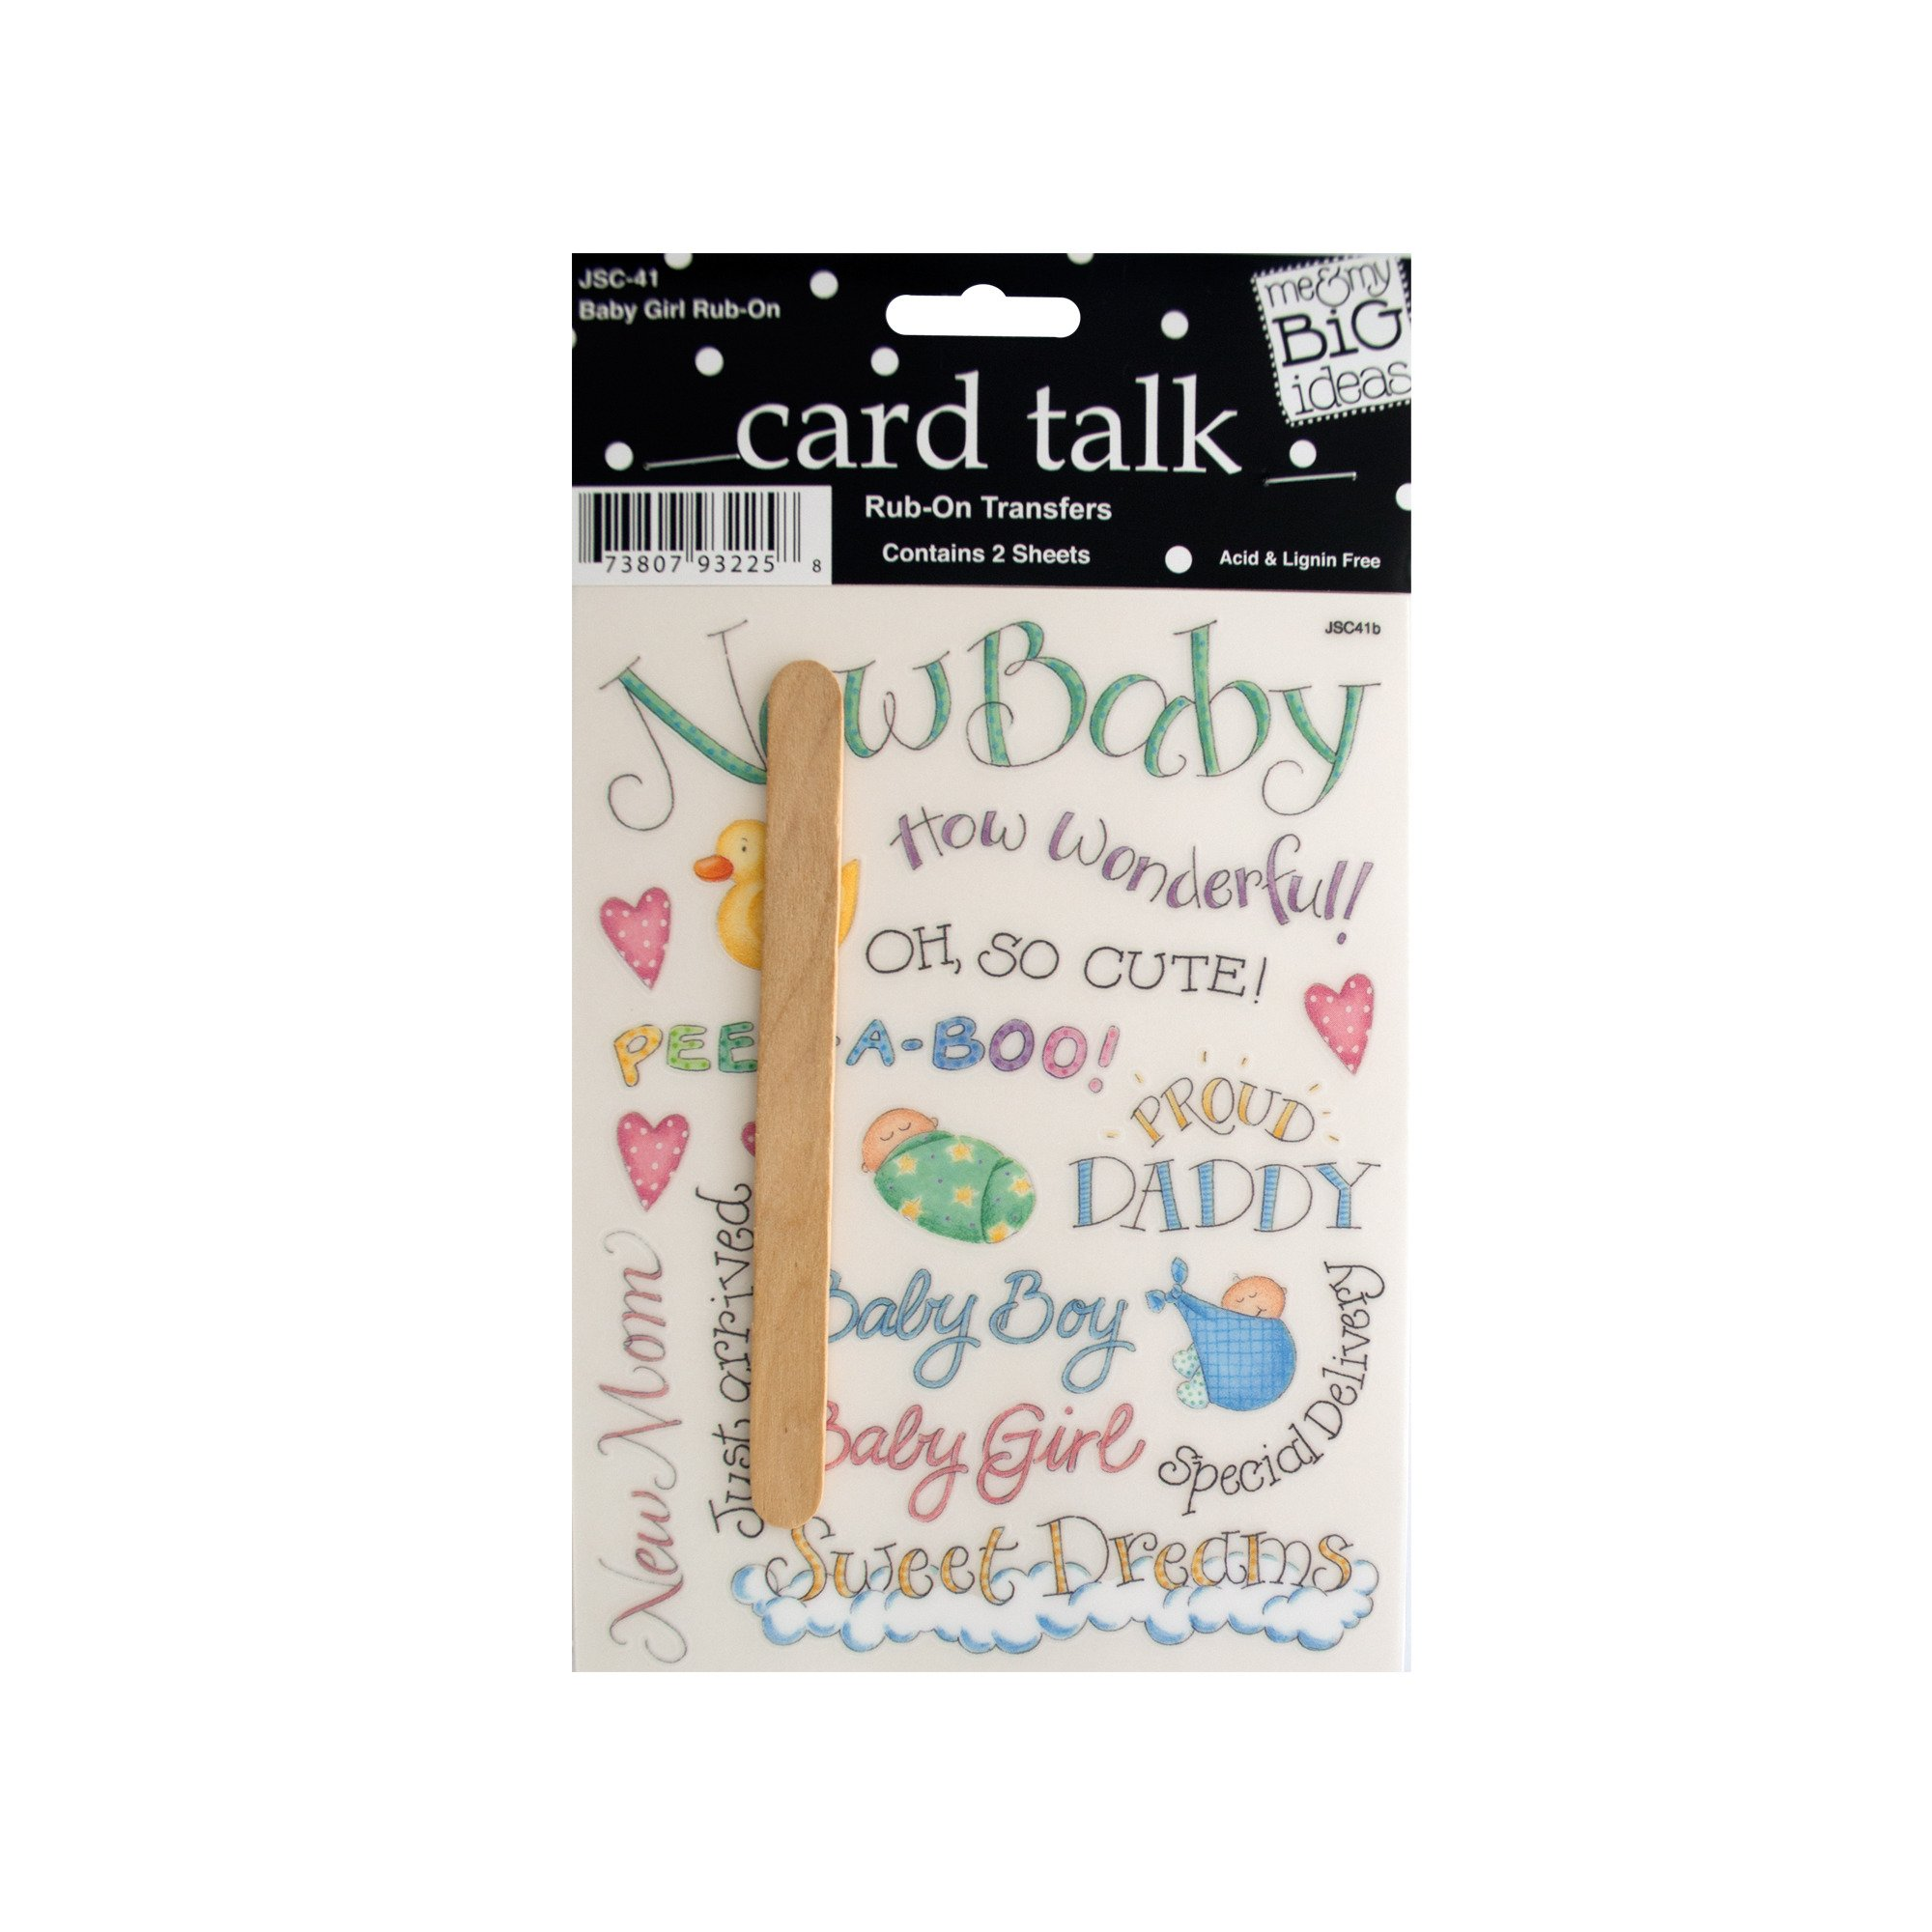 123-Wholesale - Set of 48 Baby Girl Rub-On Transfers - Scrapbooking Rub-ons by 123-Wholesale